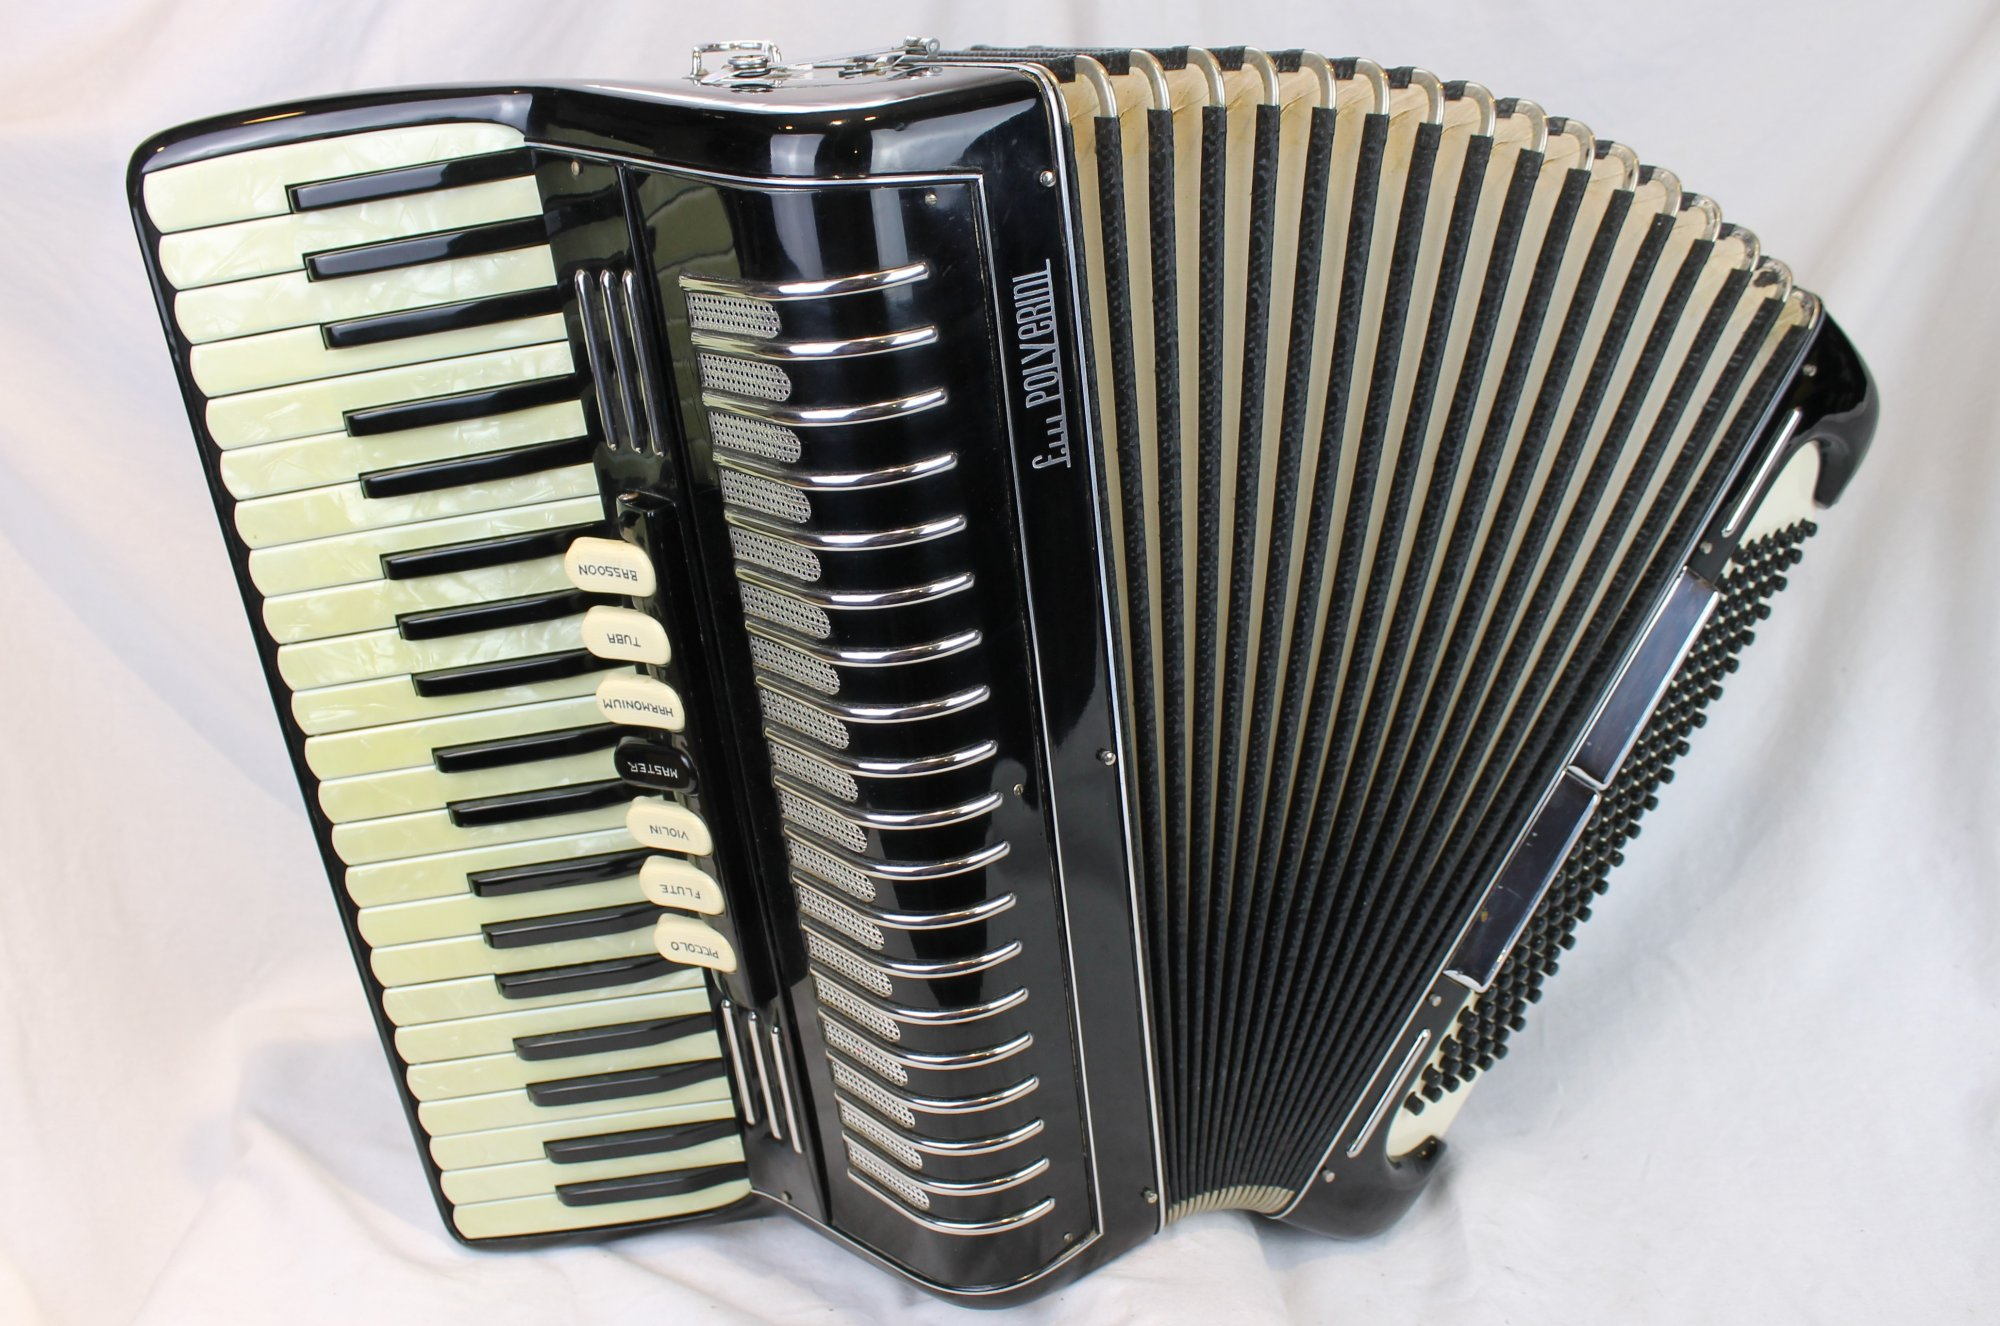 4212 - Black Fratelli Polverini Tone Chambered Piano Accordion LMH 41 120